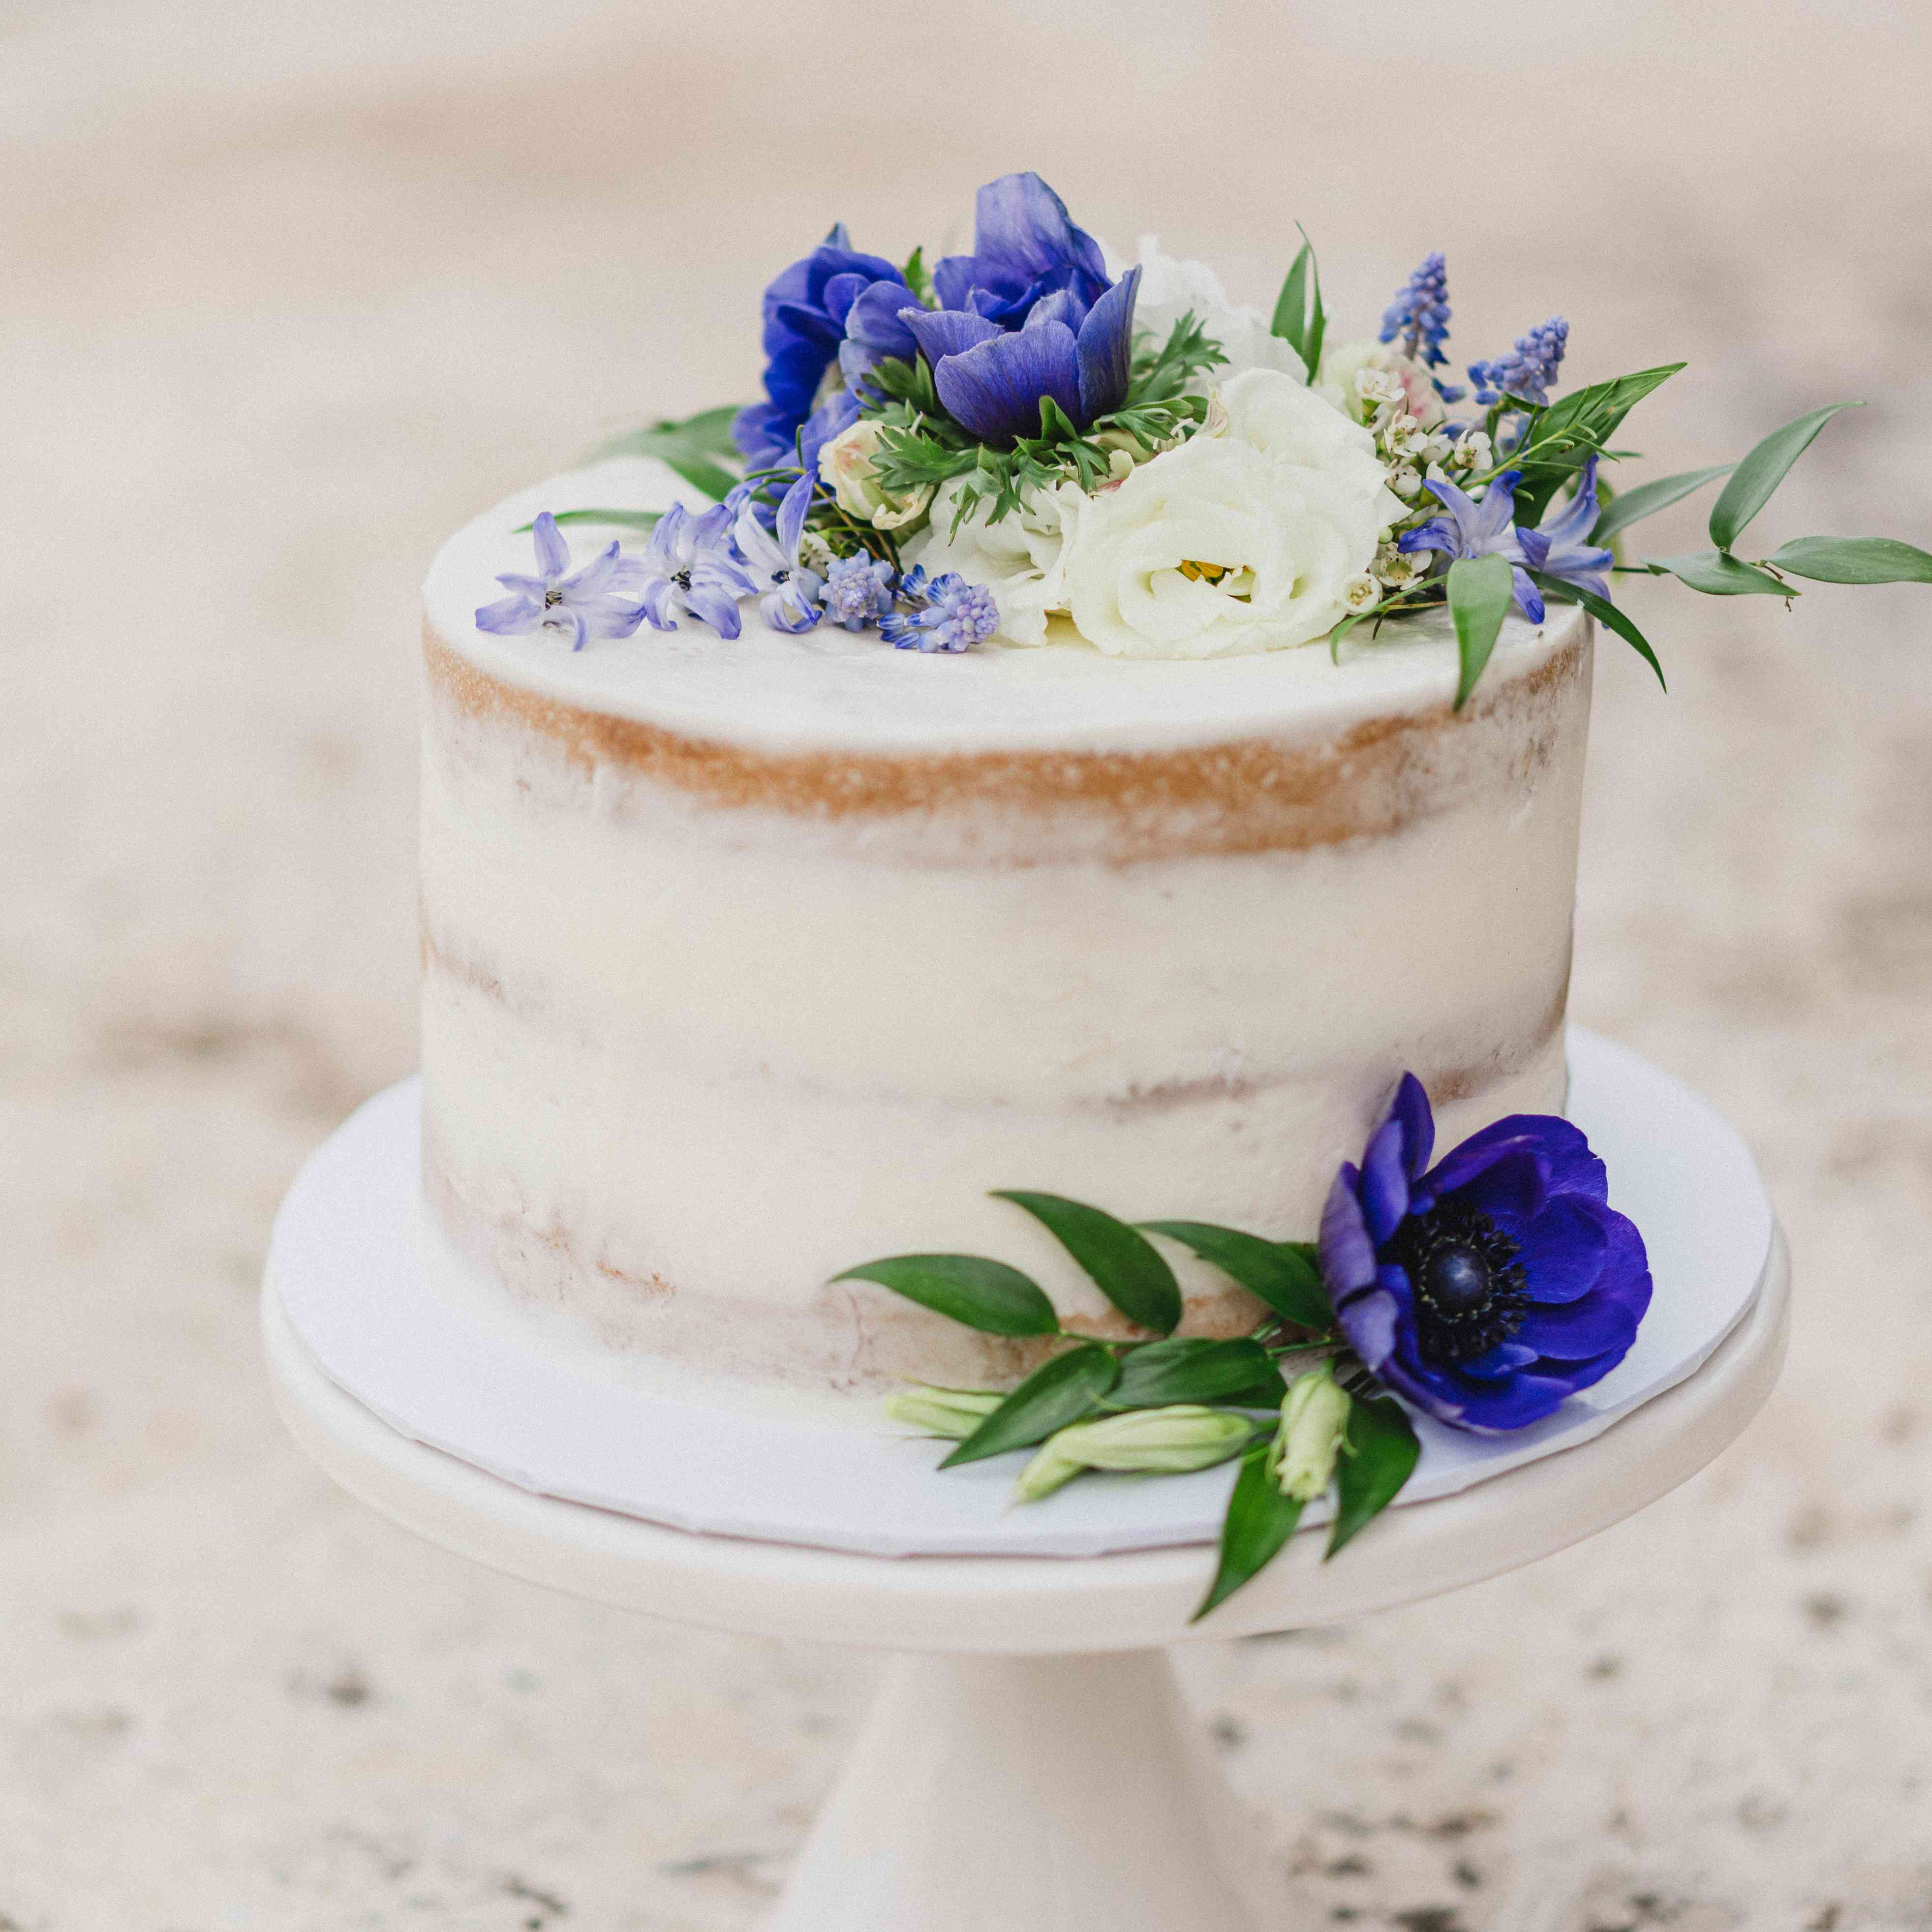 25 Small Wedding Cakes For An At Home Wedding